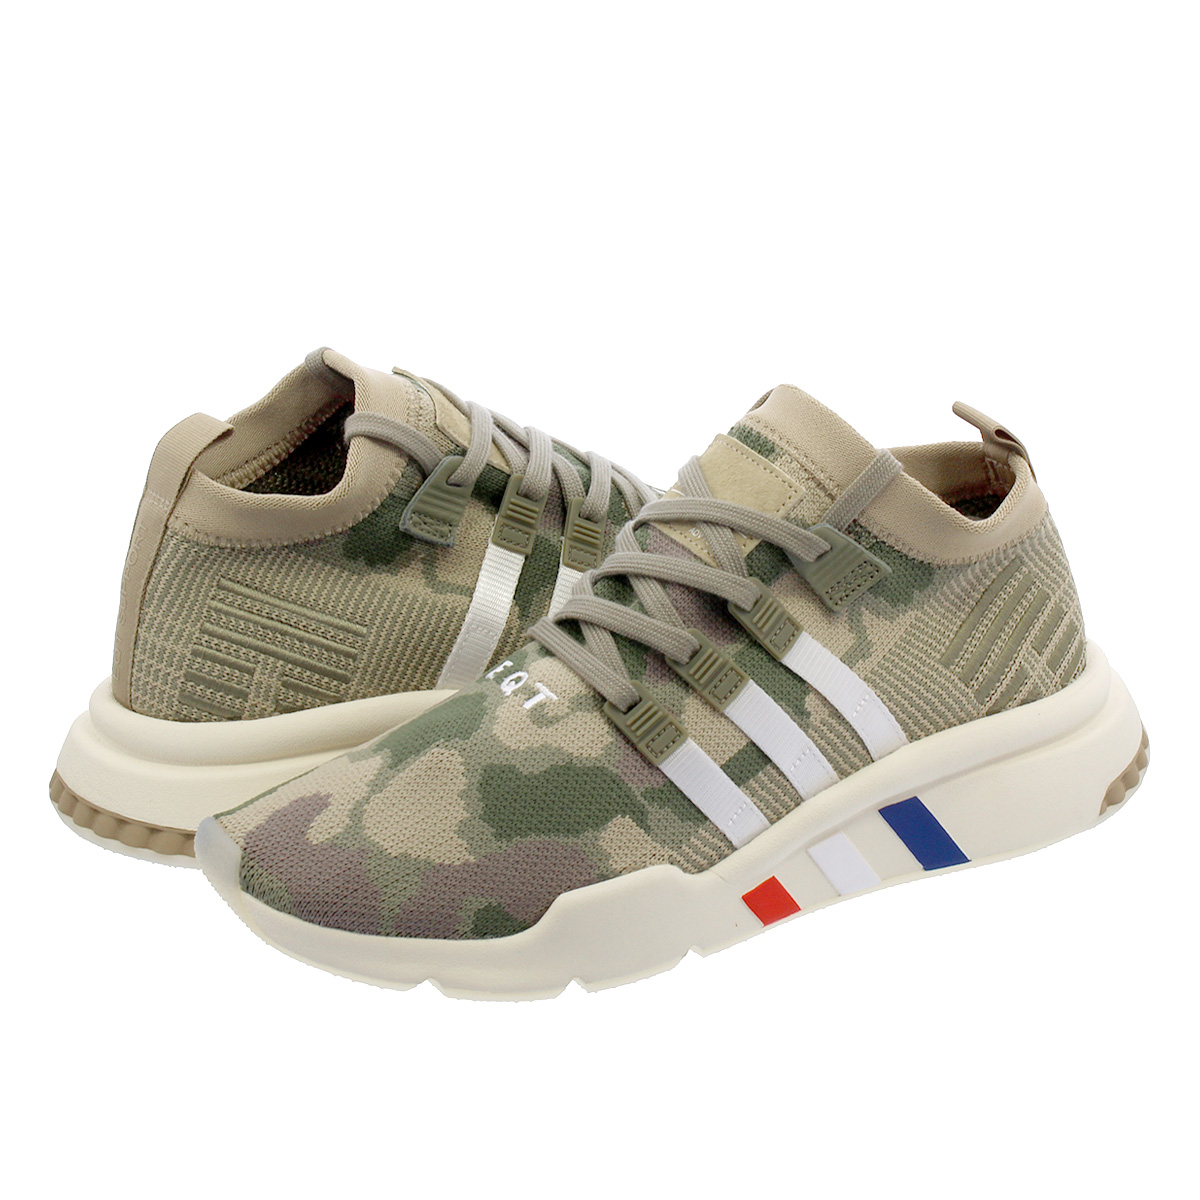 separation shoes ce9c8 0a508 LOWTEX BIG-SMALL SHOP adidas EQT SUPPORT MID ADV PK Adidas EQT support mid  ADV PK TRACE KHAKITRACE CARGOCHALK WHITE b37513  Rakuten Global Market